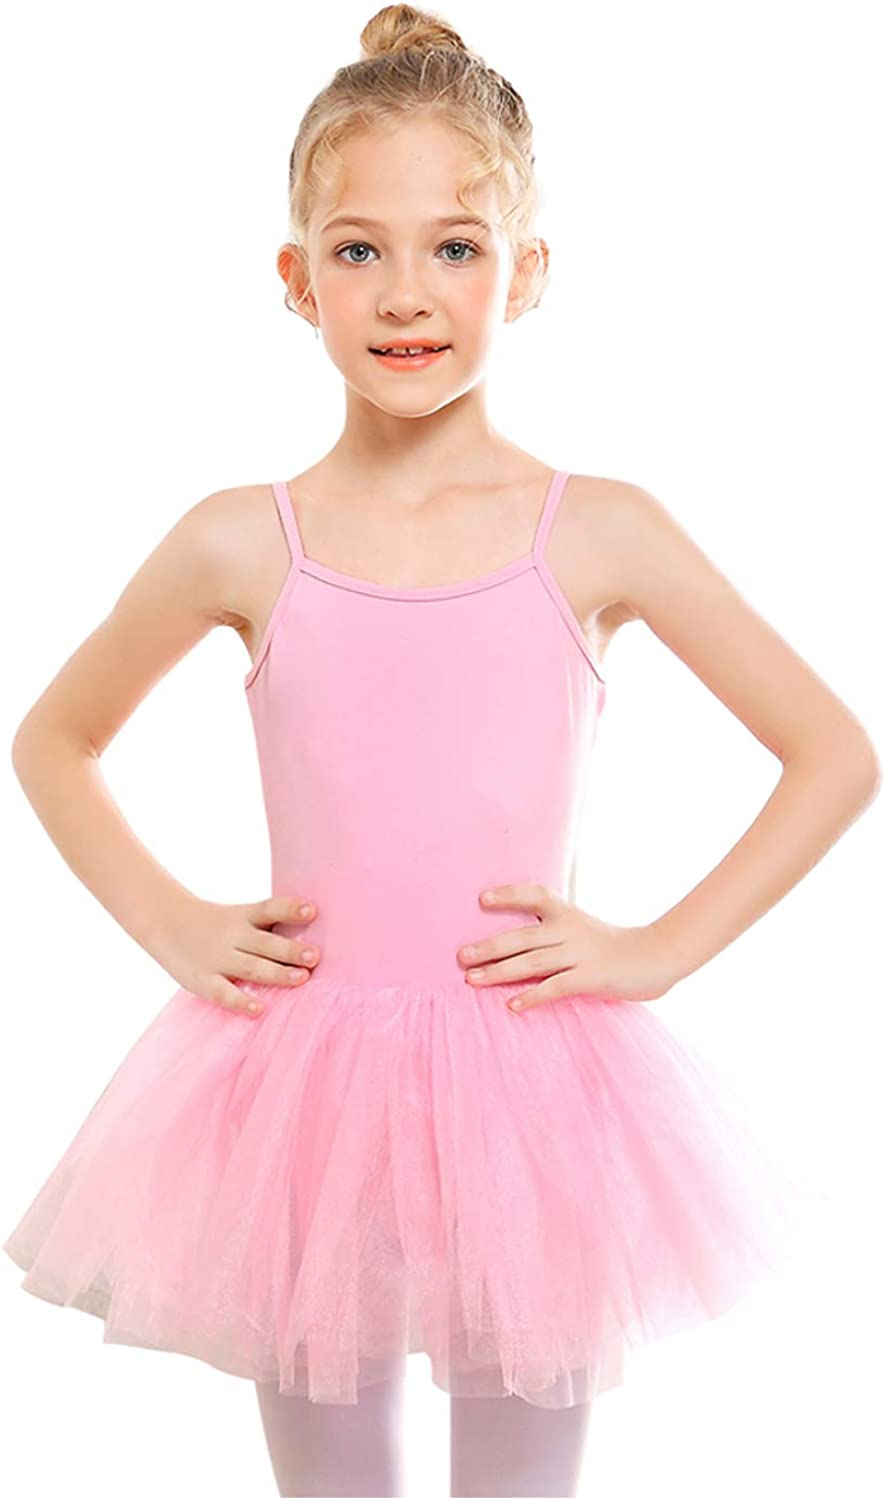 Girls Ballet Dress Dance Tutu Dress Pink Red White Blue 3 4 5 6 7 8 Years